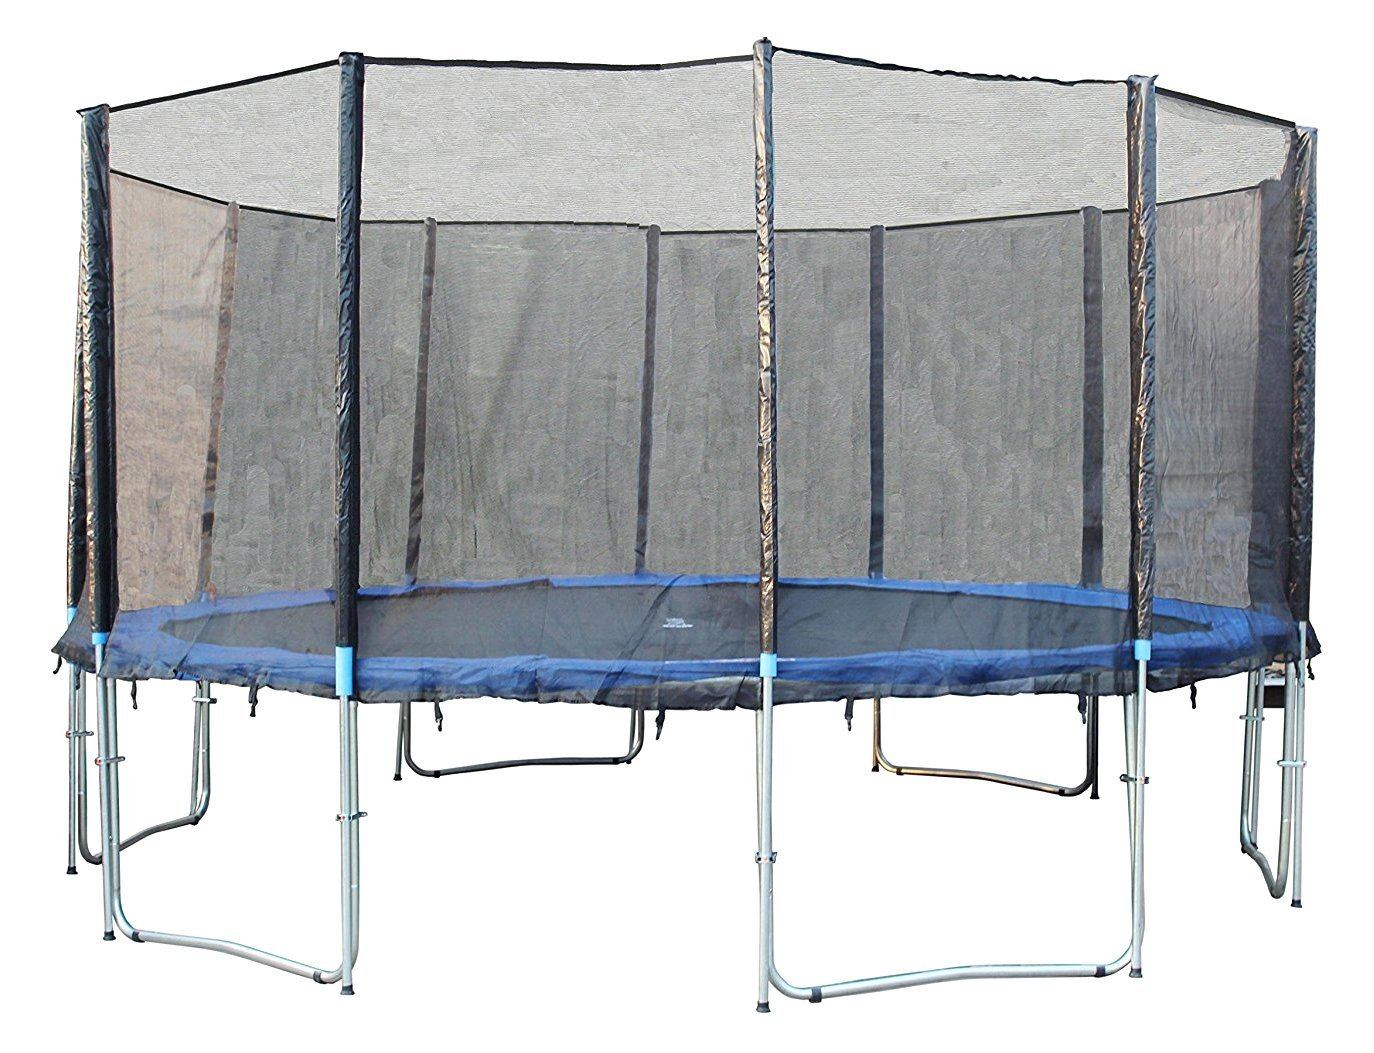 Exacme TUV Approved Trampoline with Safety Pad & Enclosure